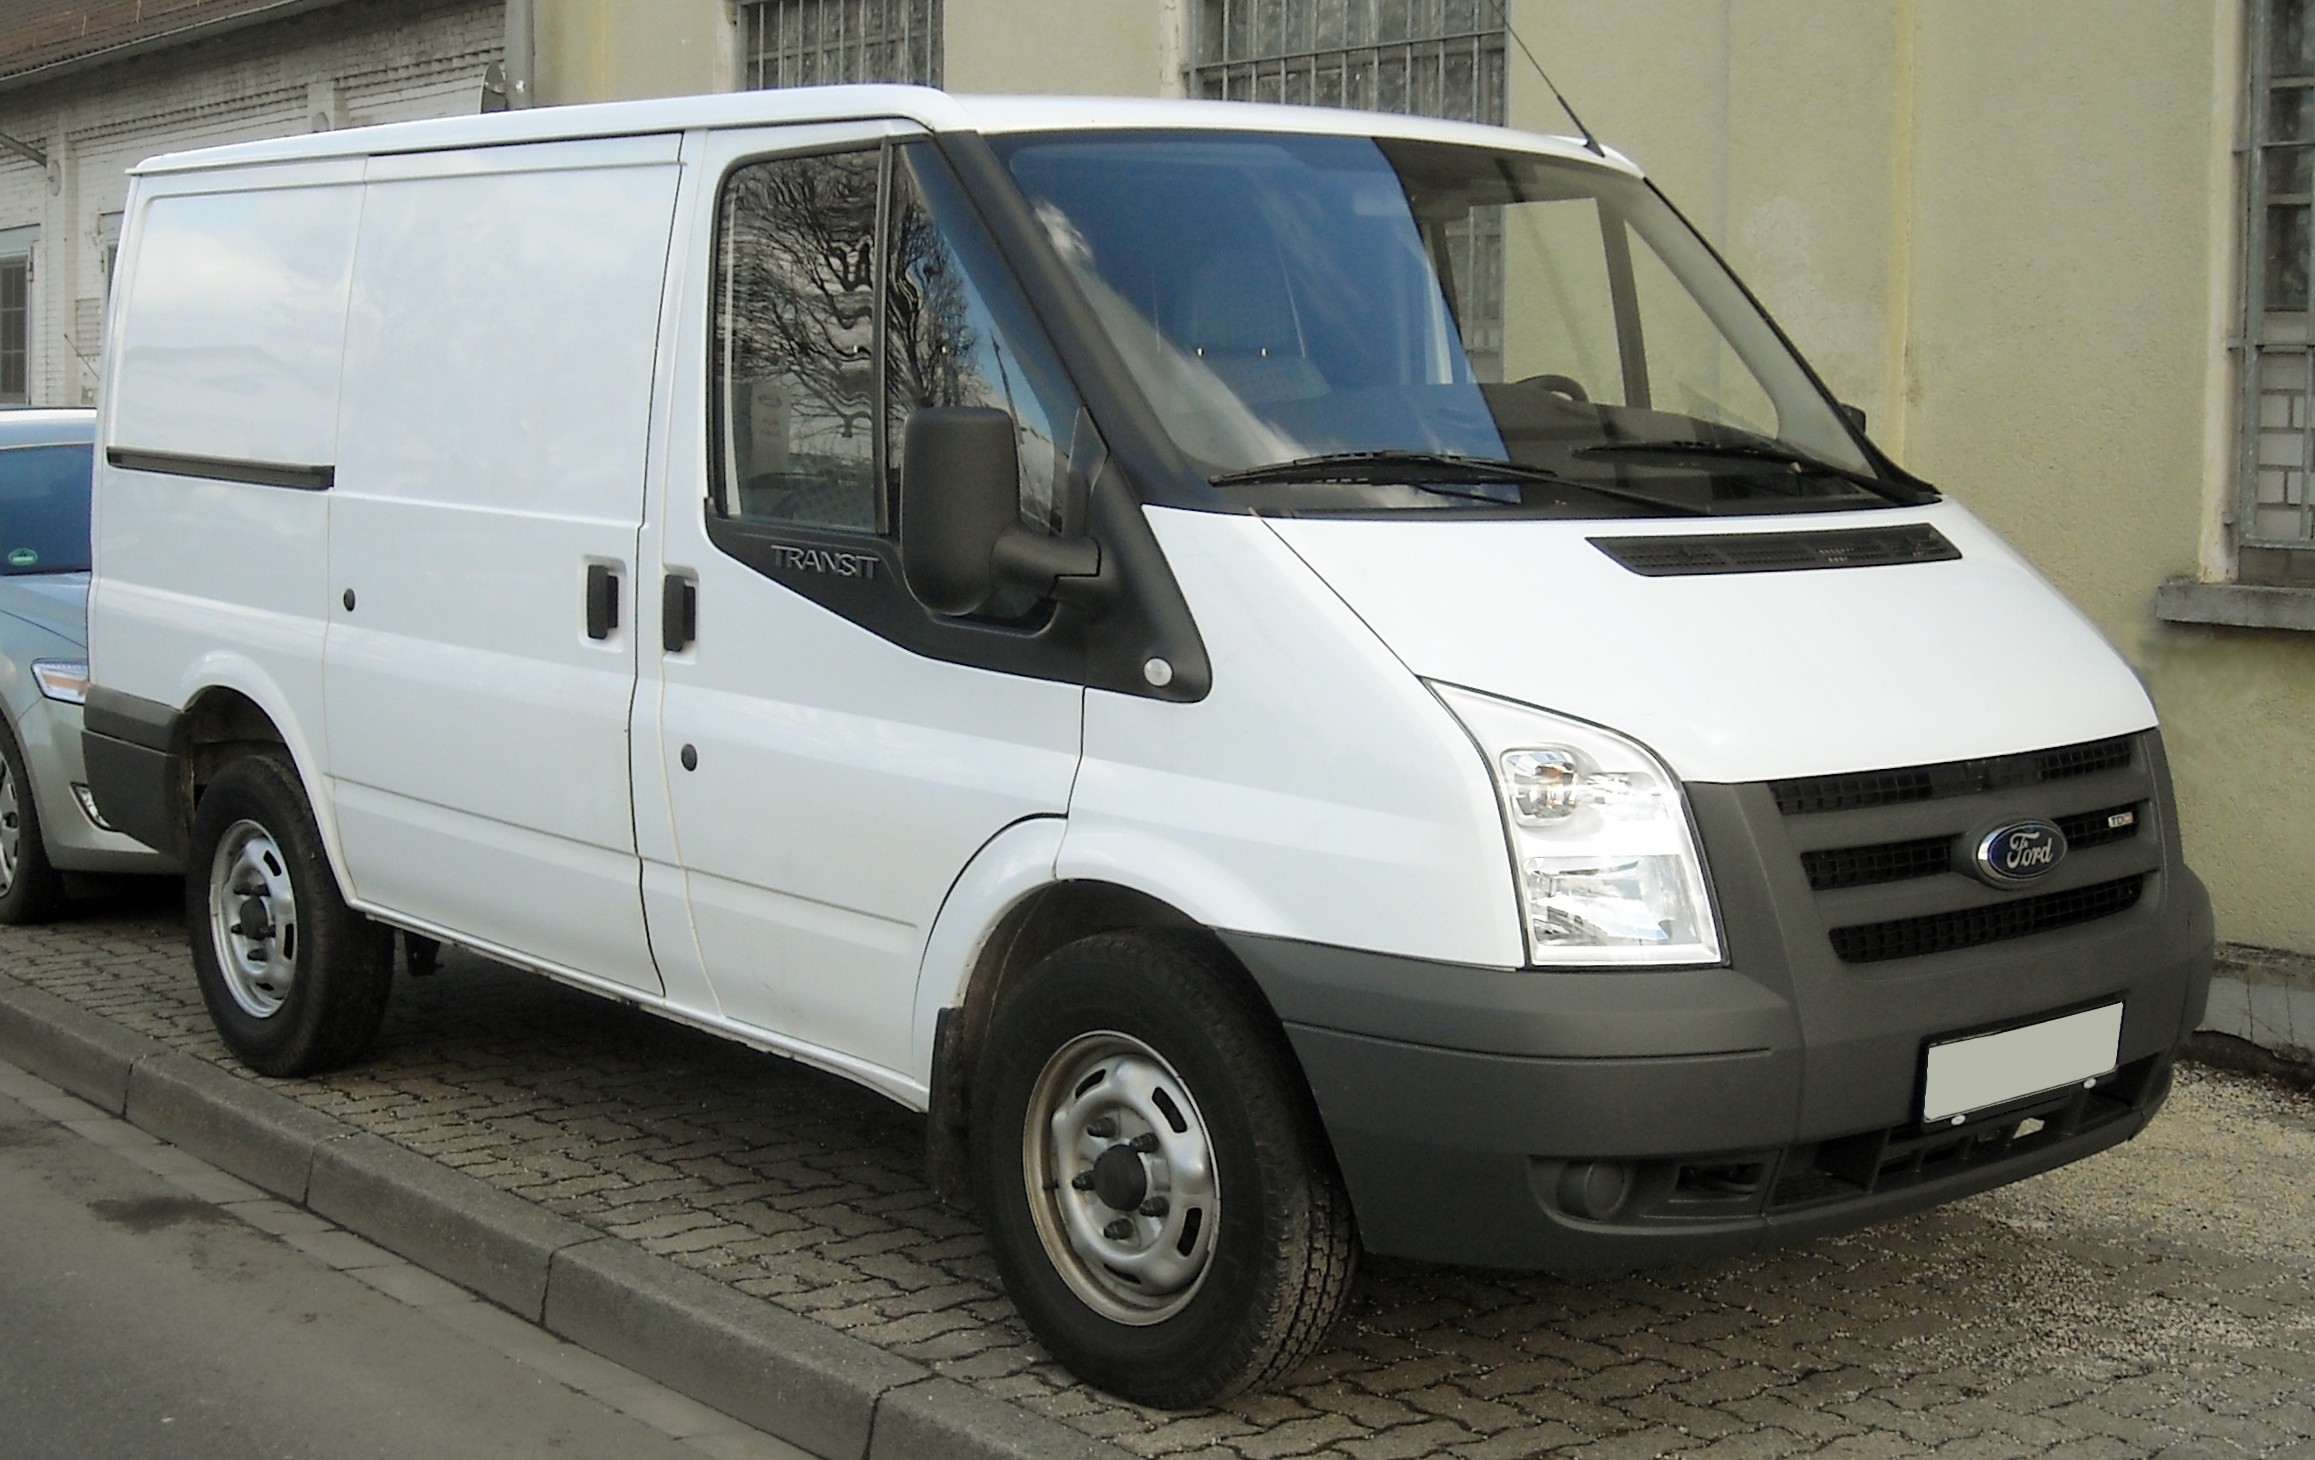 Ford Transit   Tractor & Construction Plant Wiki   FANDOM powered by